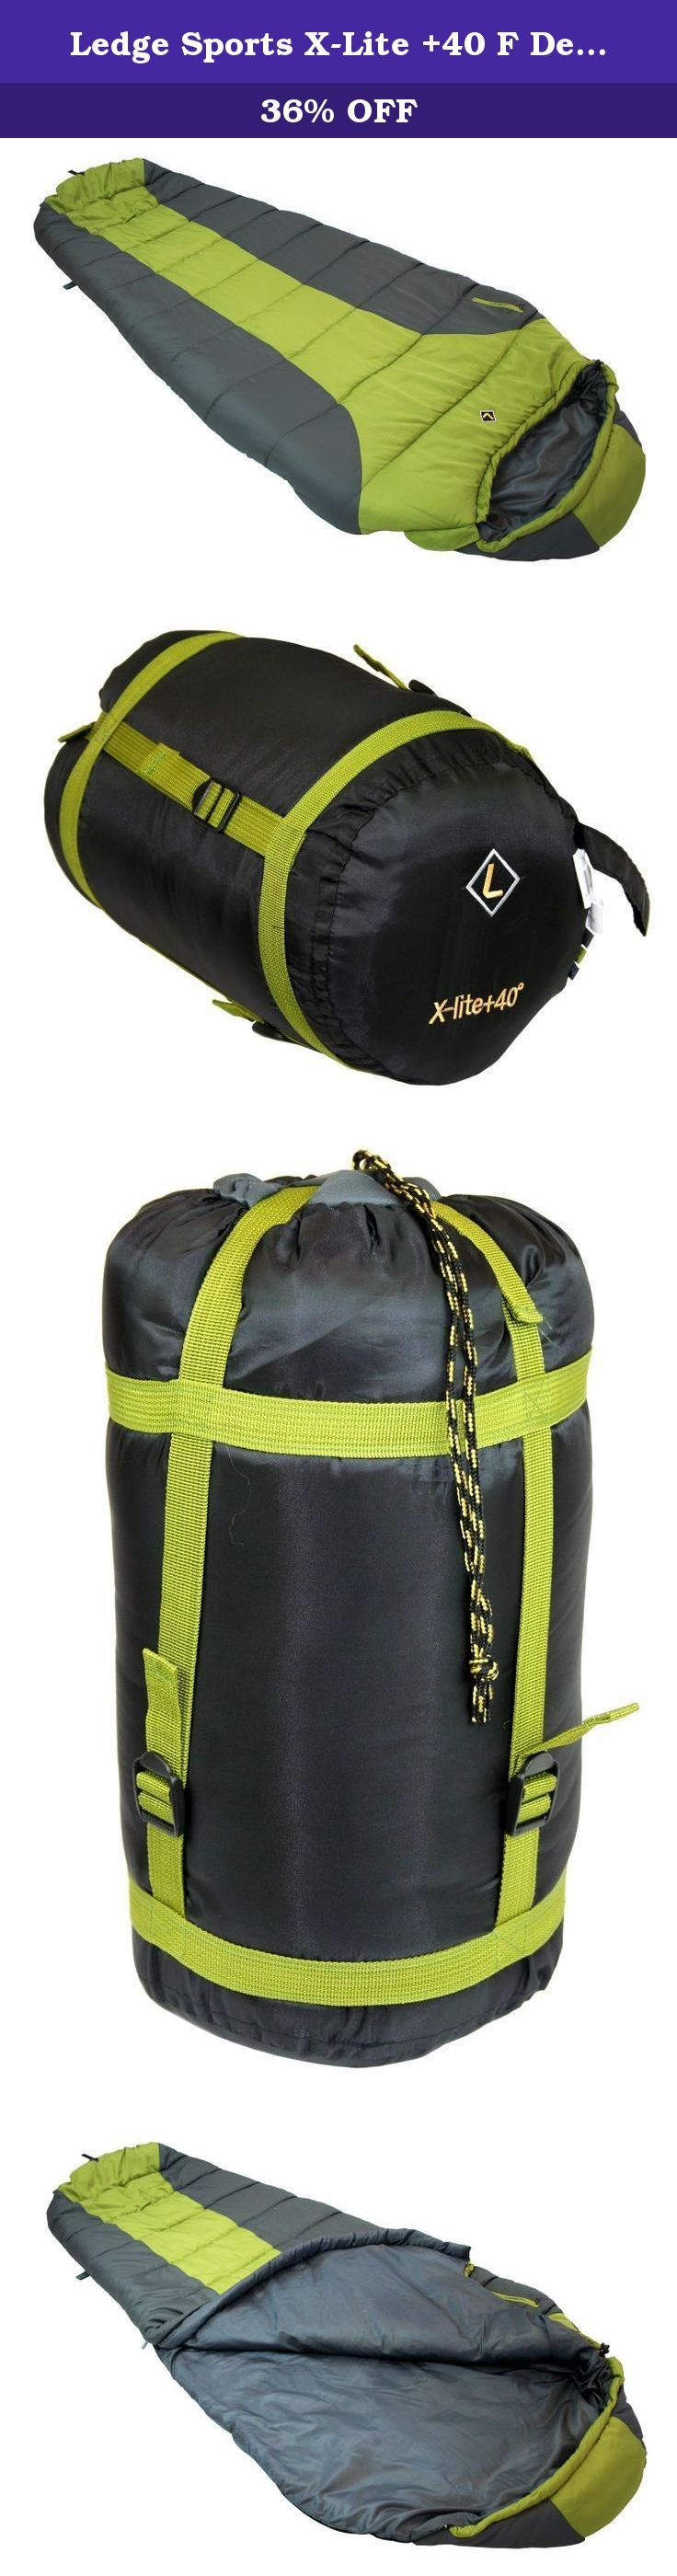 Ledge Sports X-Lite +40 F Degree XL Oversize Ultra Light Design, Compact Sleeping Bag (88 X 36 X 26). Built for size and weight restrictions on extended journeys. The X-Lite is Oversize size with premium fill. Temperature rating is a gauge for experienced users who understand proper equipment use. Unlike other Ledge classic and oversize bags it is not a comfort rating but a guide for use.